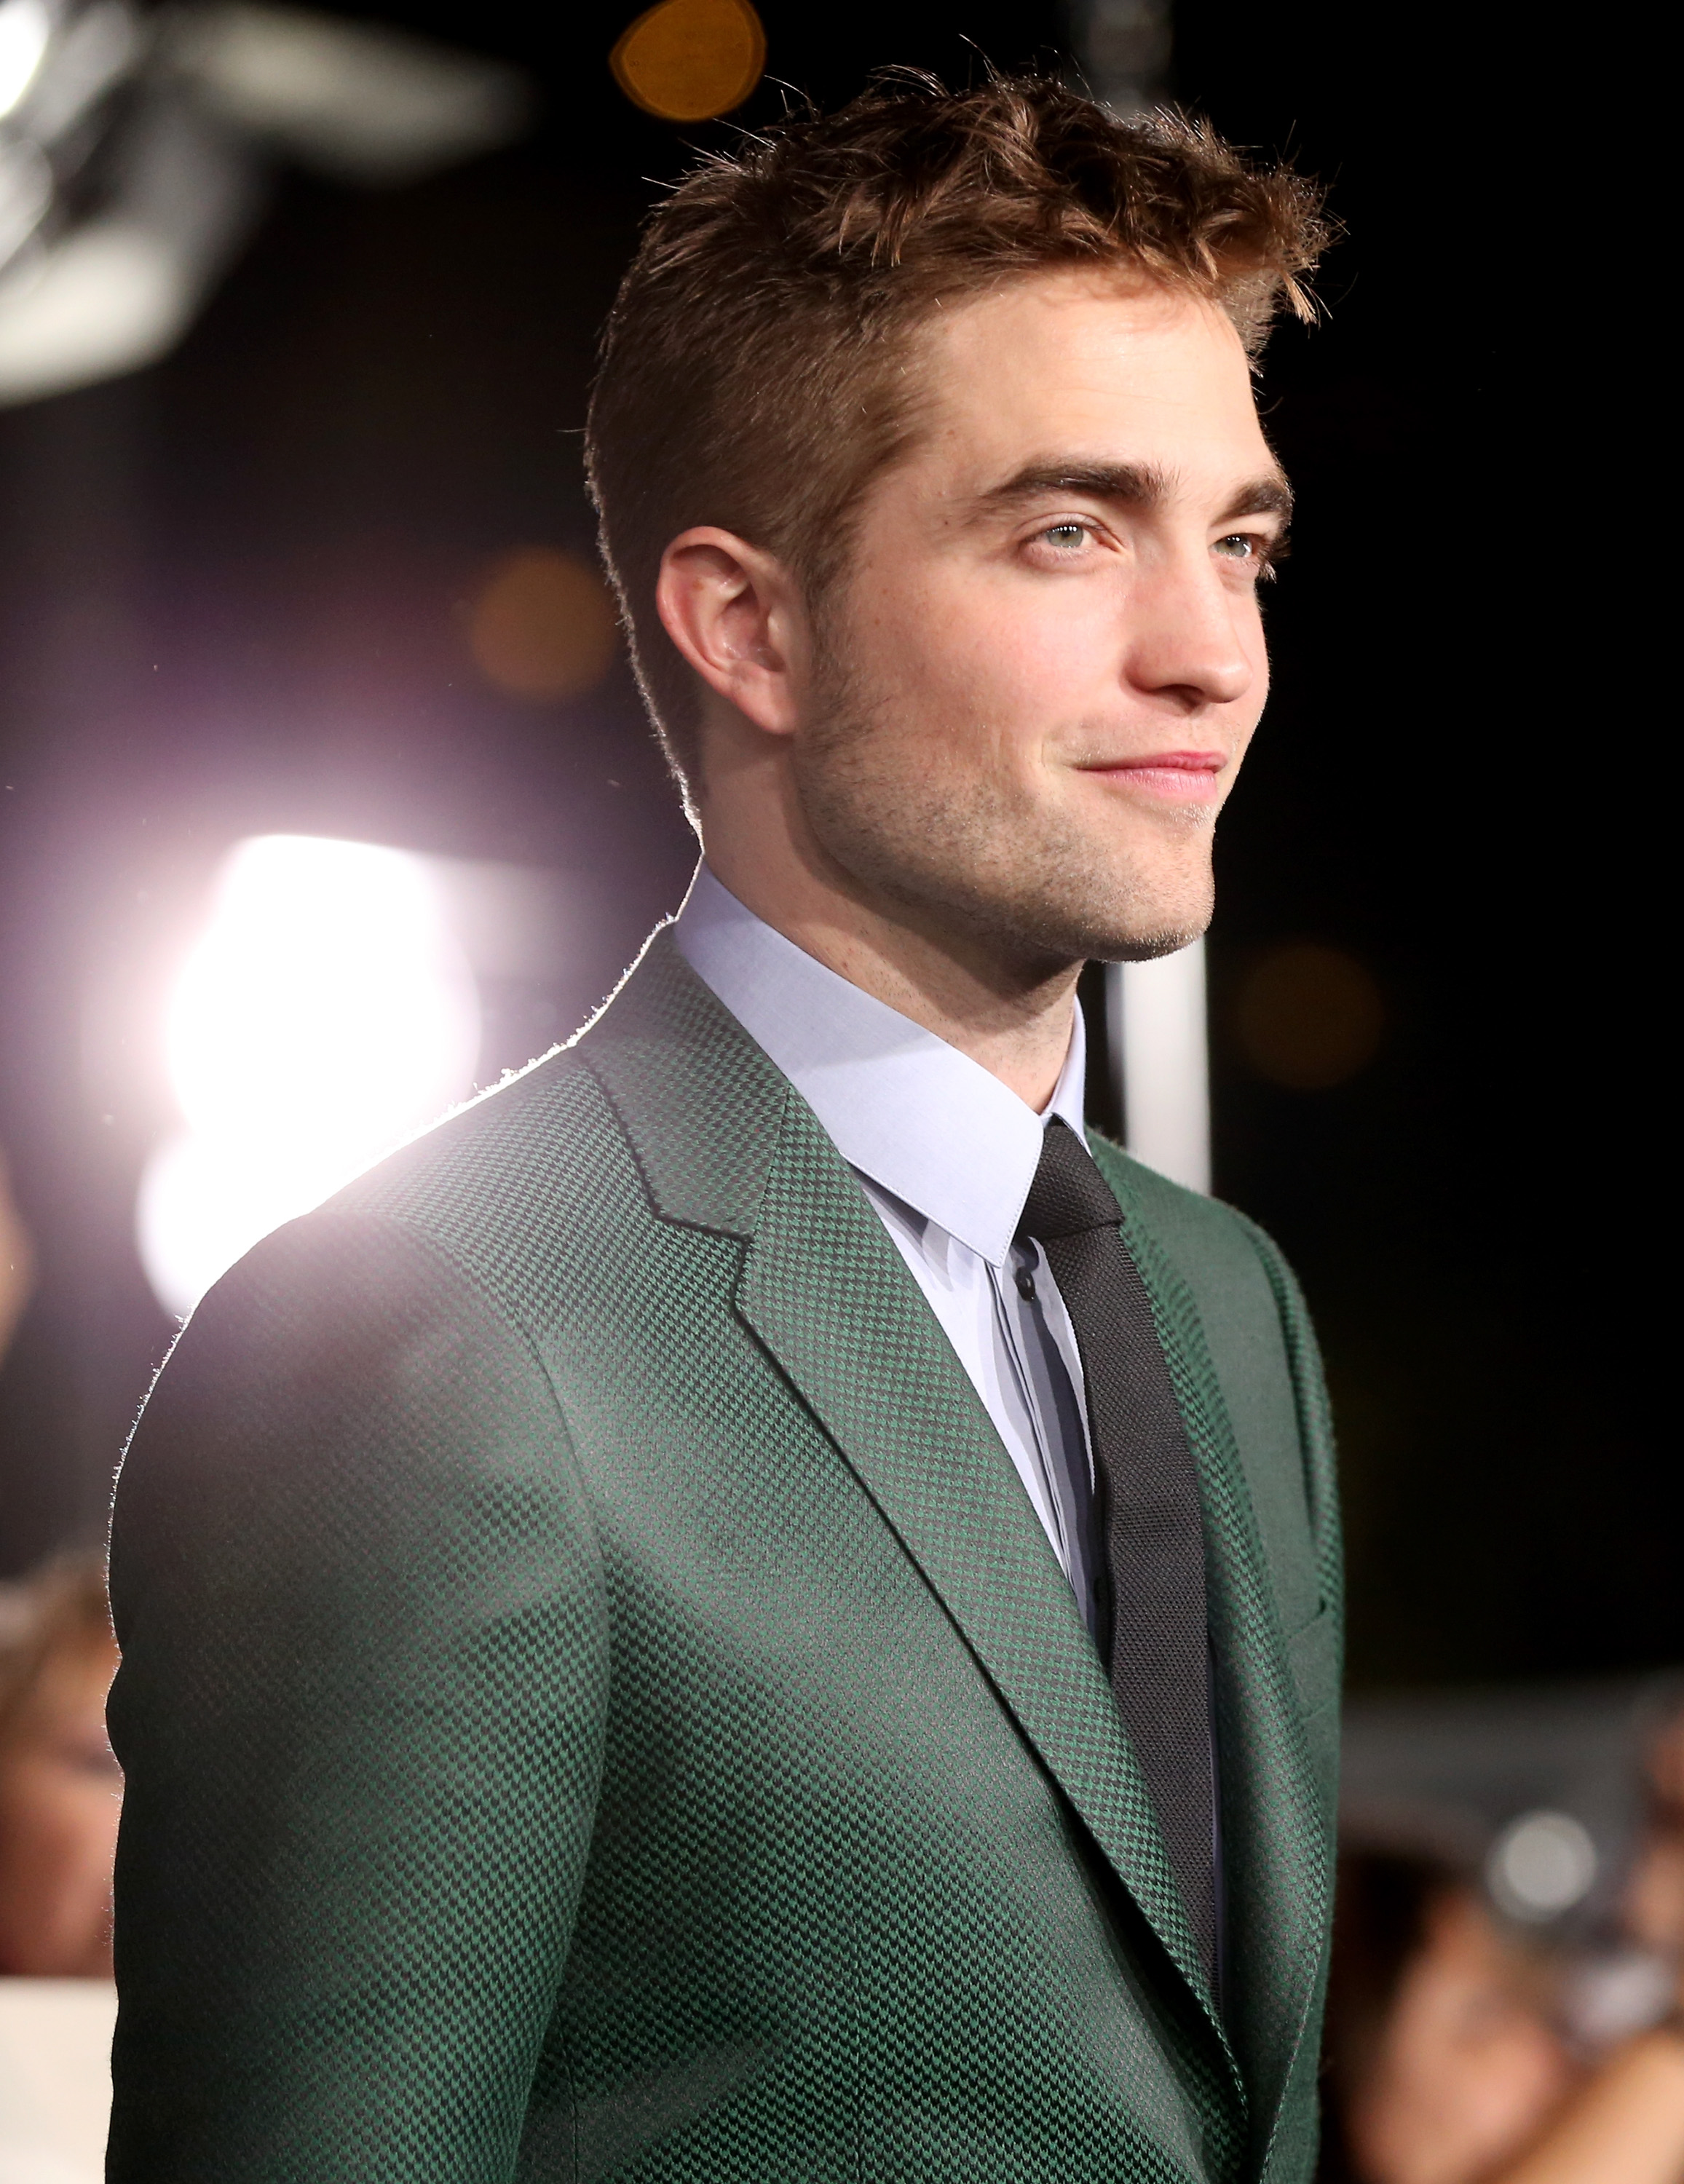 How to Appreciate Robert Pattinson How to Appreciate Robert Pattinson new images